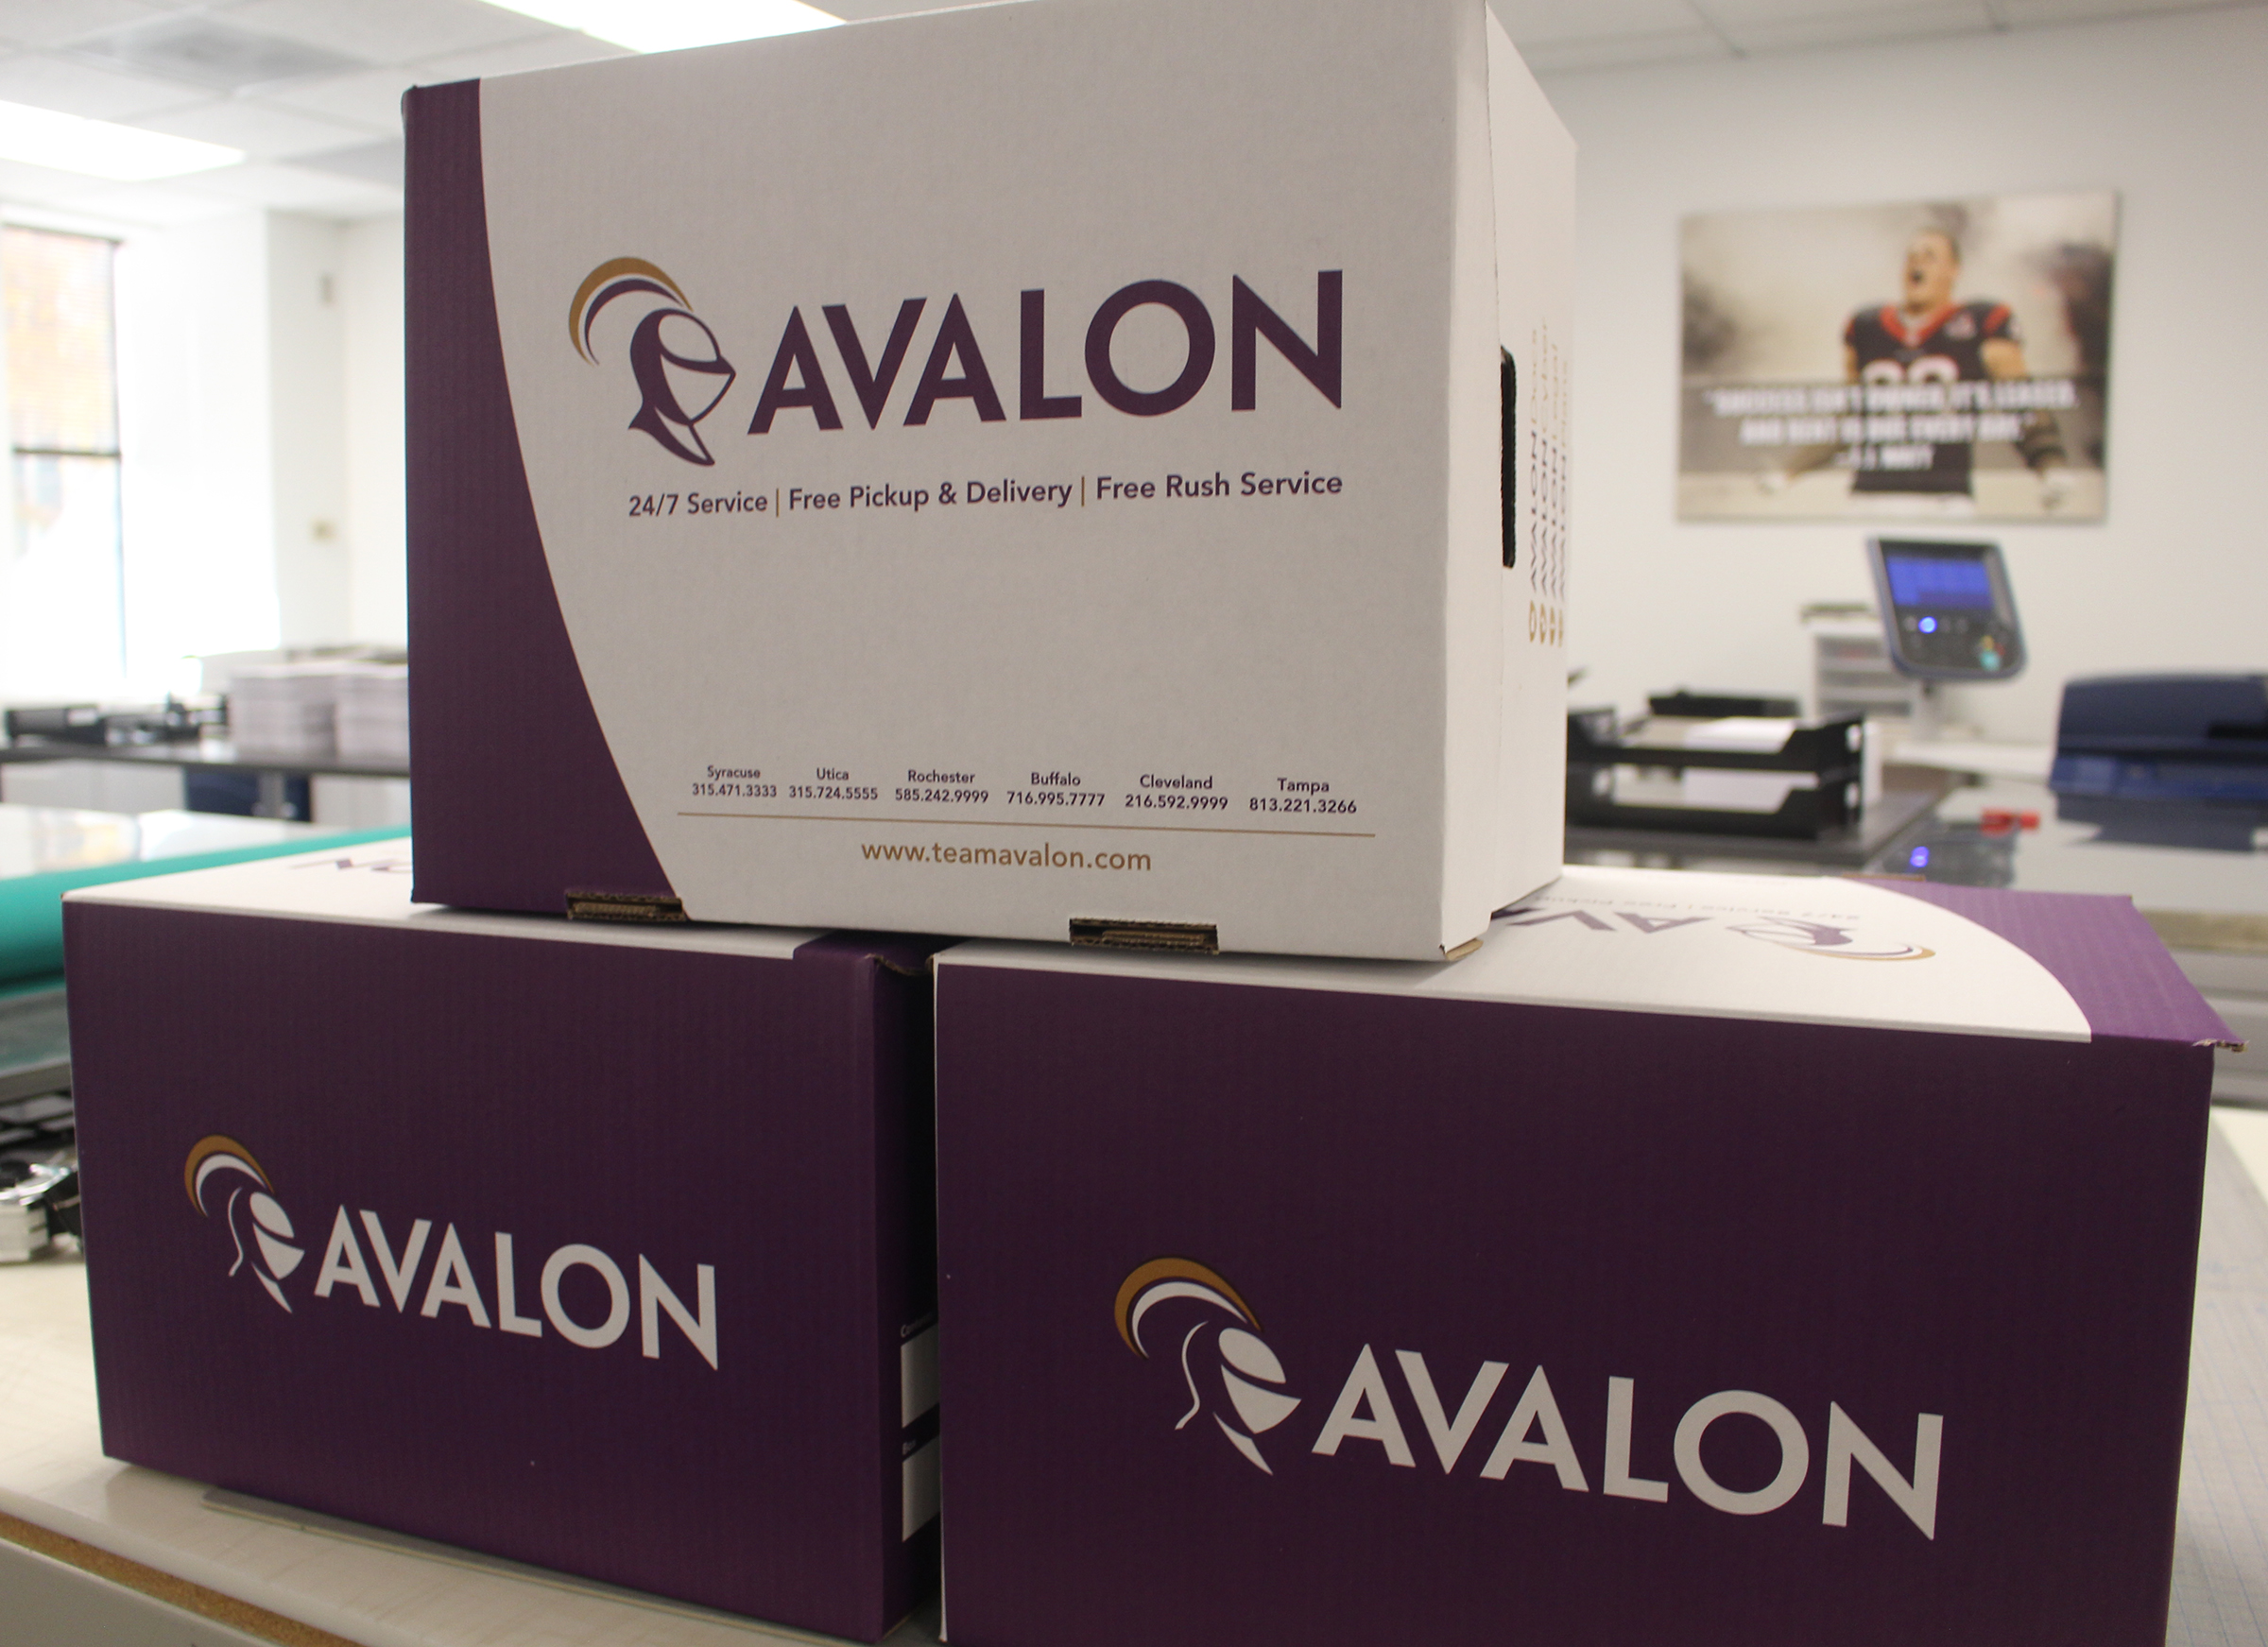 Avalon Legal – which has operated under the Special Counsel, D4 or Omaha Legal Services monikers – offers a full range of litigation support services, including printing and mailing solutions. (Photo by Scott Stewart)